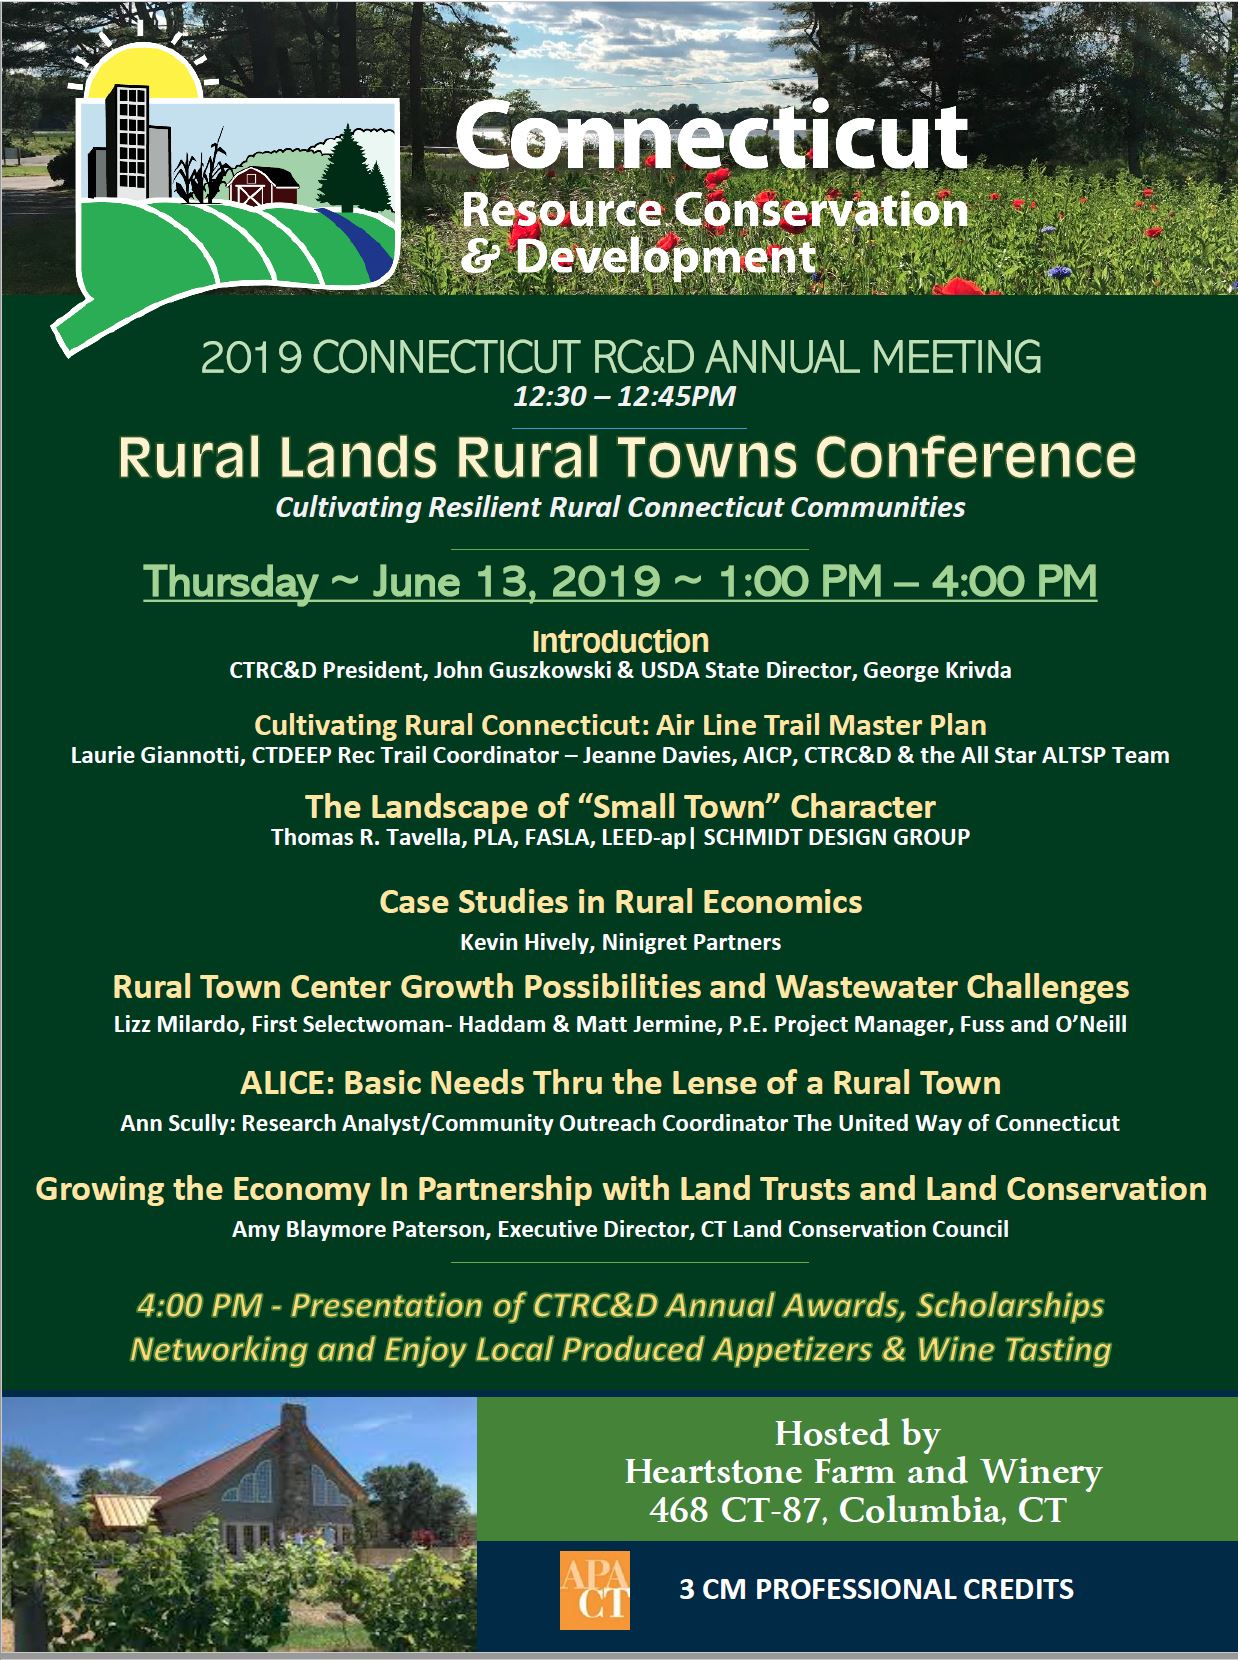 2019 Rural Lands Rural Towns Conference – Connecticut Resource